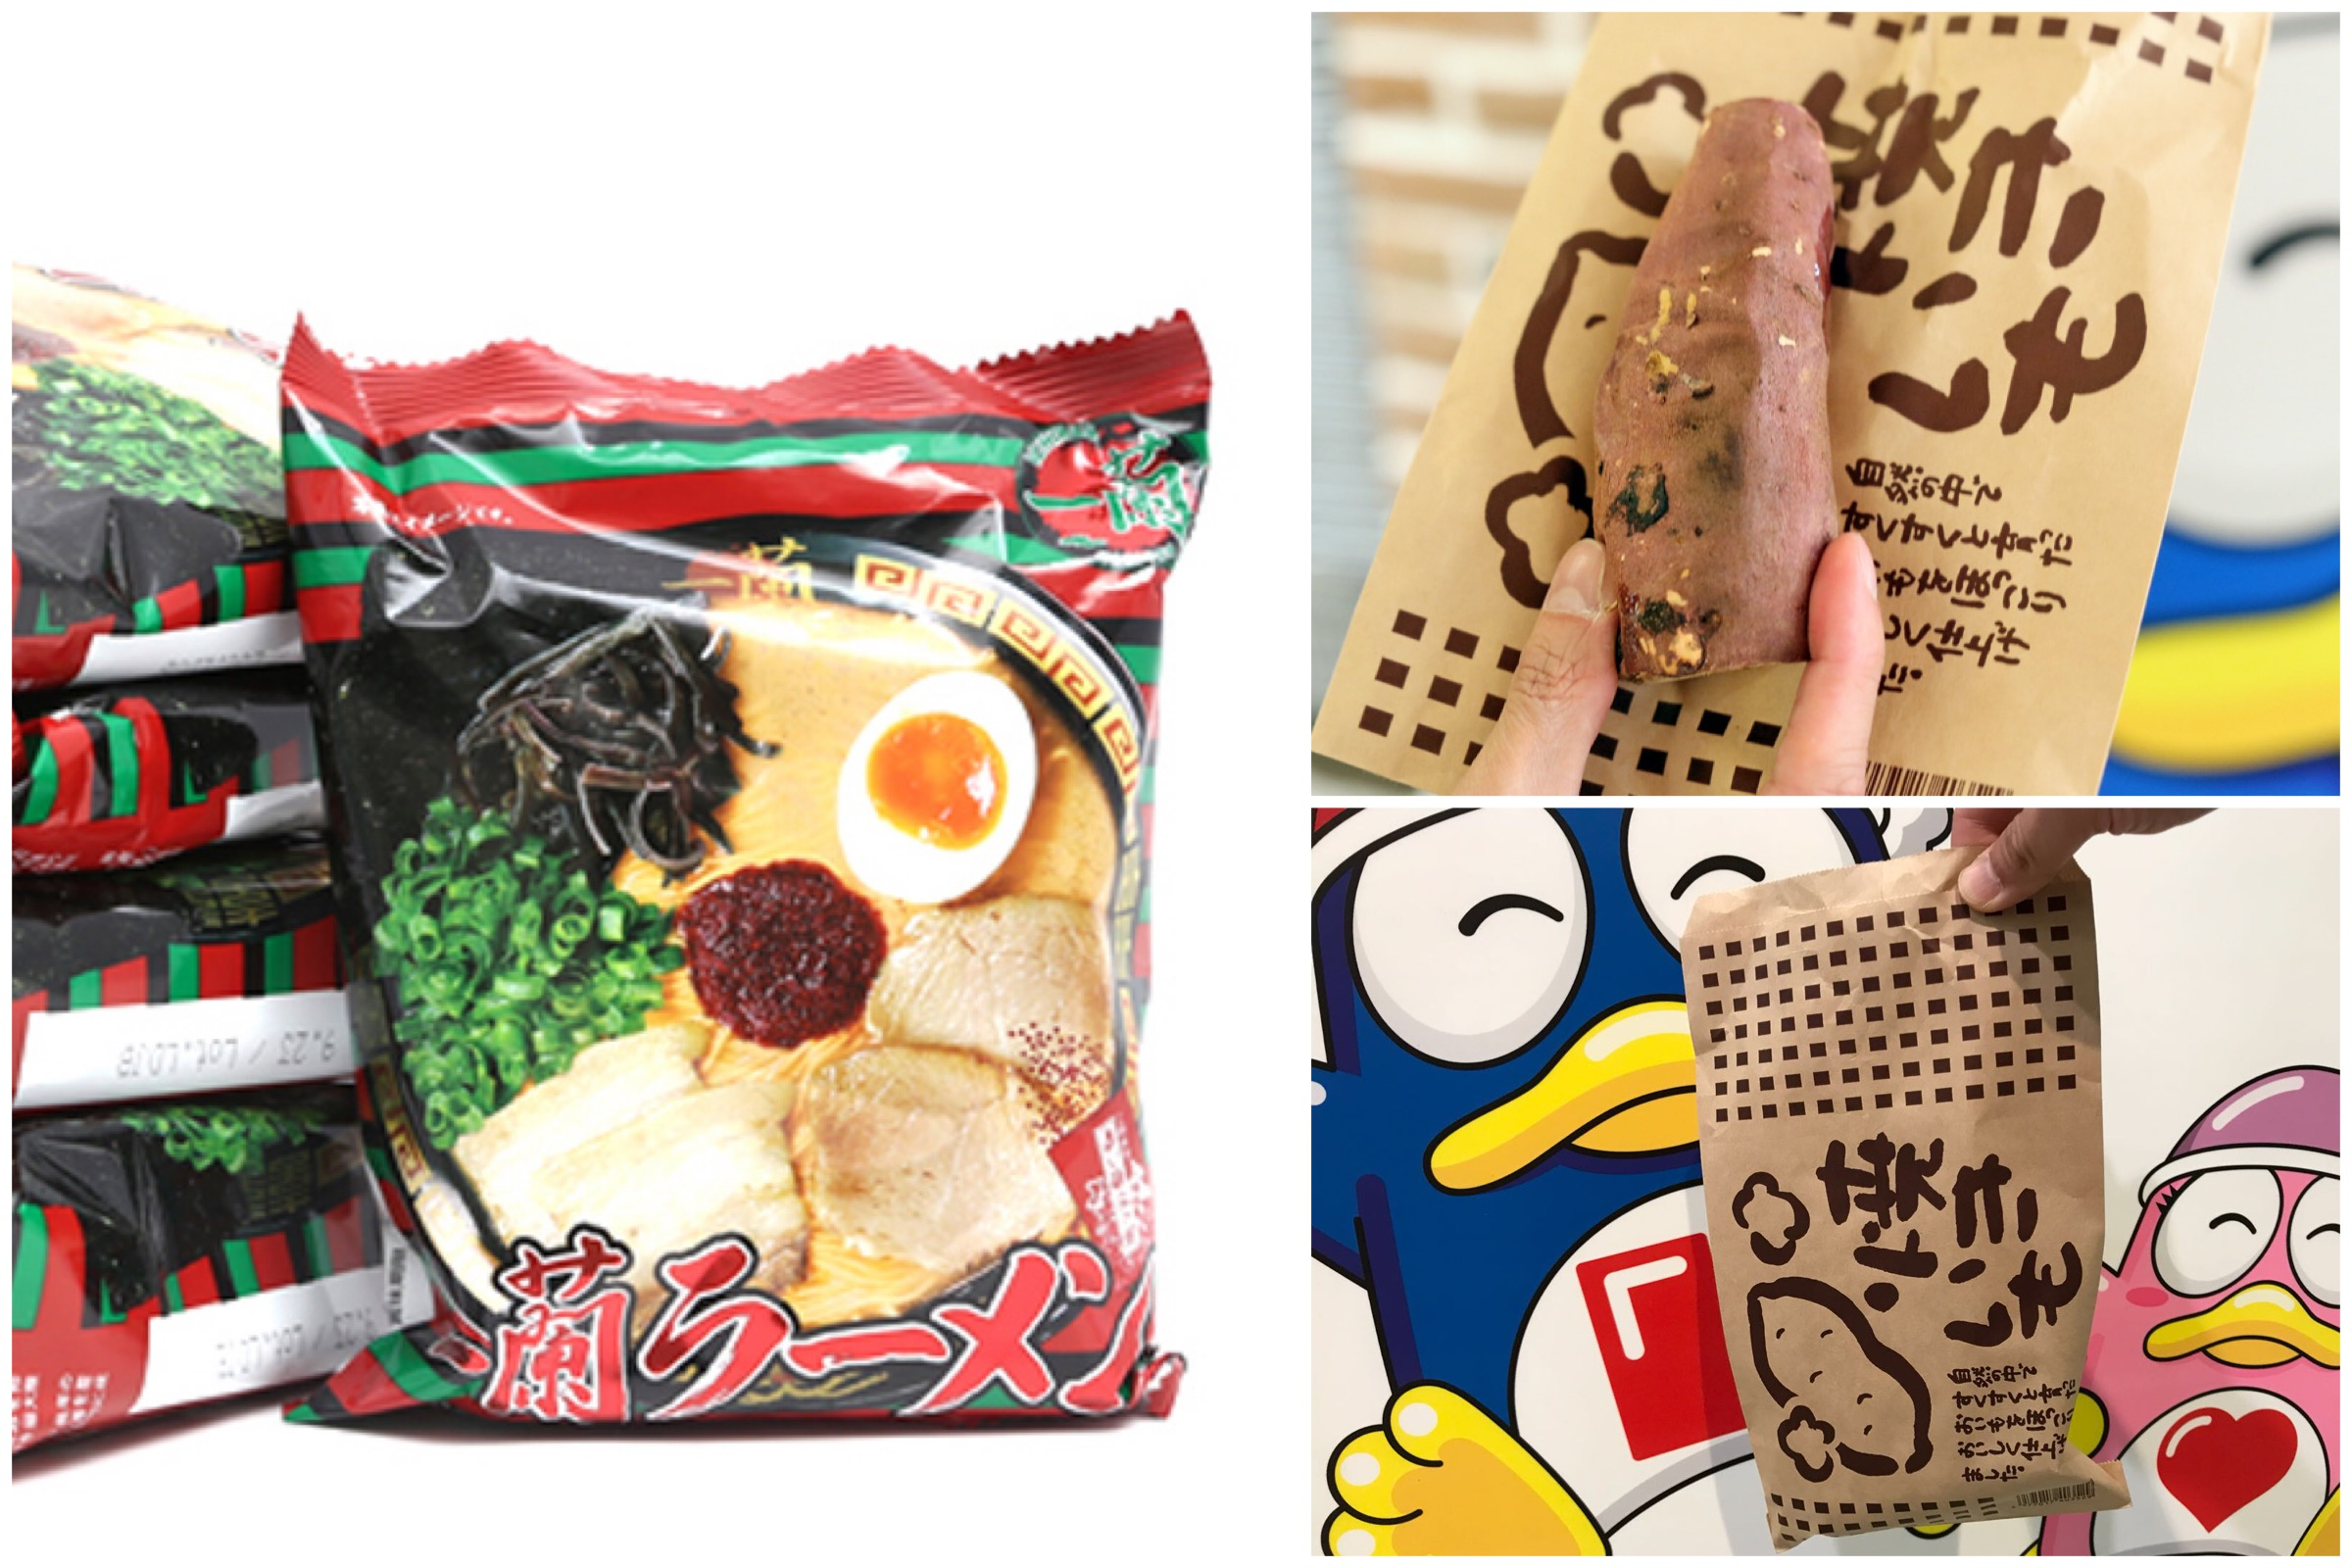 Don Don Donki – Opening At 100AM Mall Tanjong Pagar 14 June, Selling Ichiran Ramen Packets